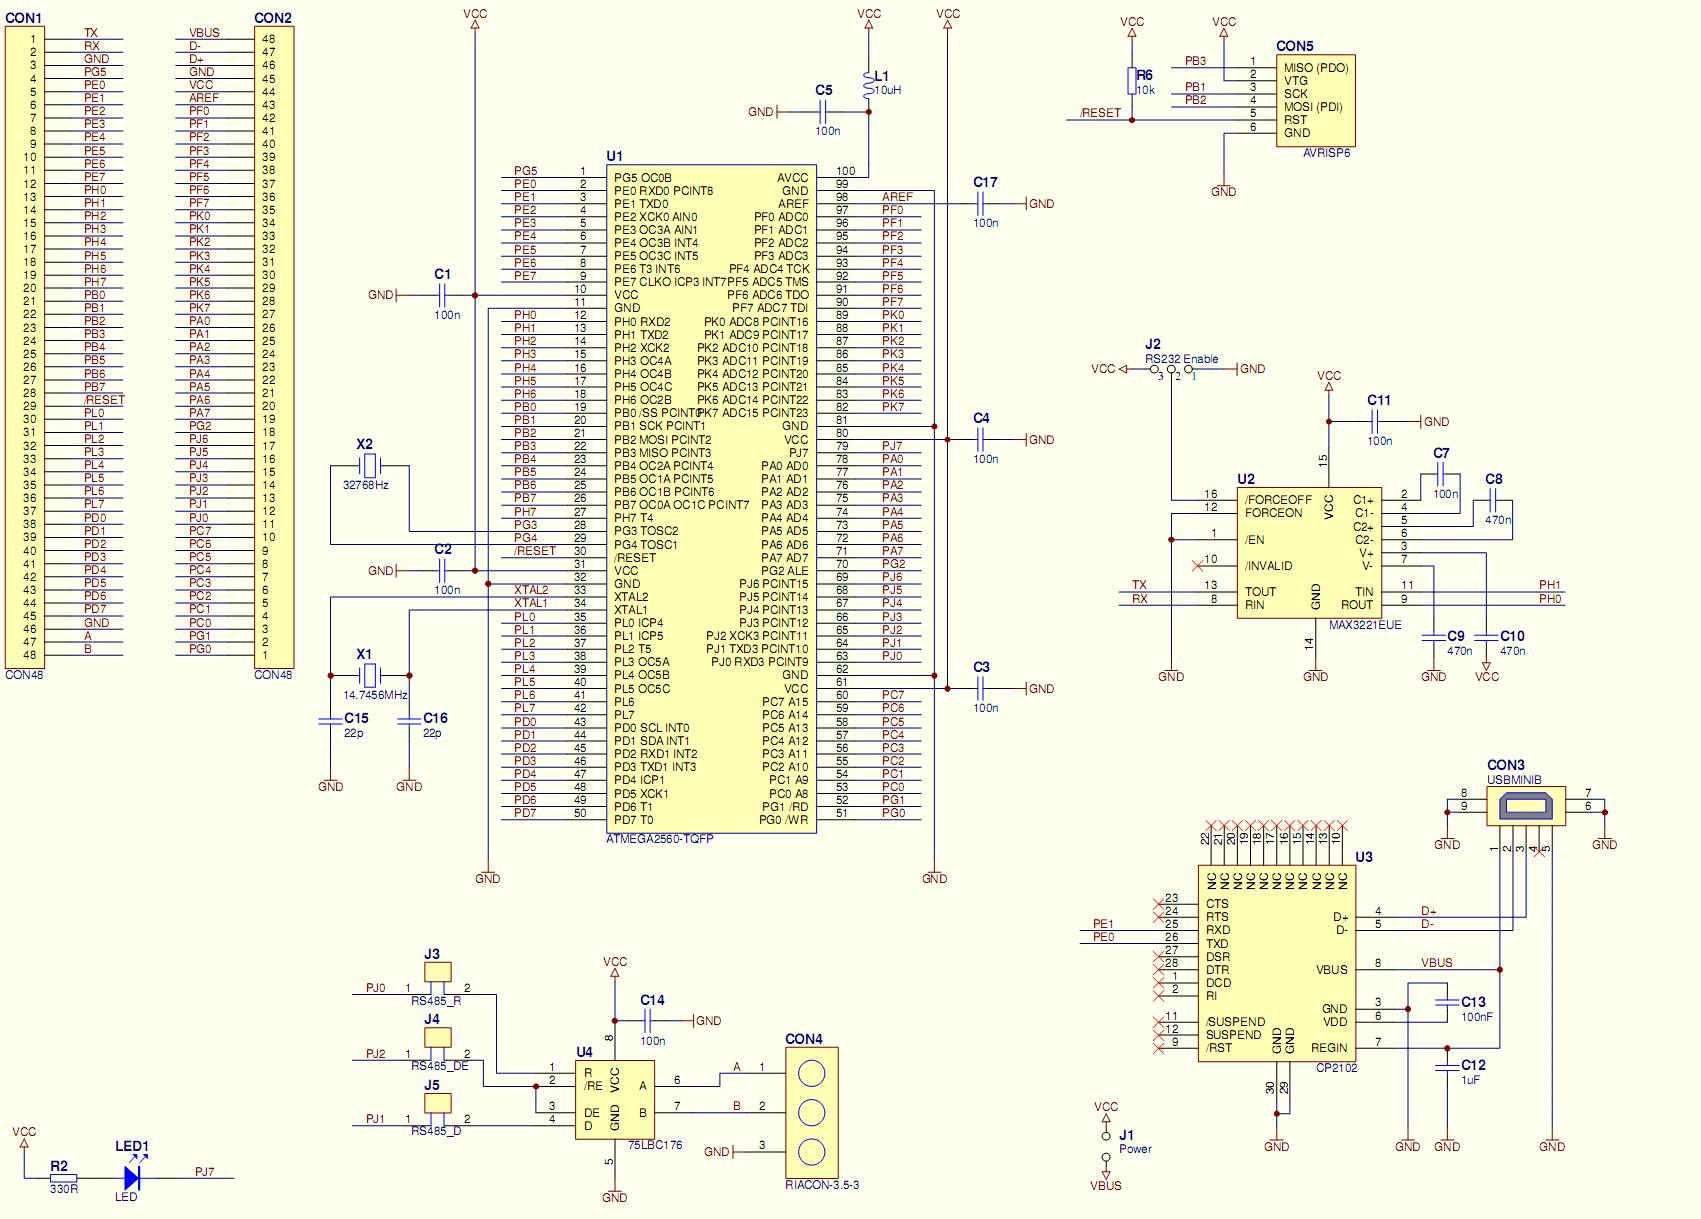 Microcontroller Module With Atmega2560 Chip45 Crumb2560 11 Documents Schematic Of The Rs232 Adapter Click To Enlarge